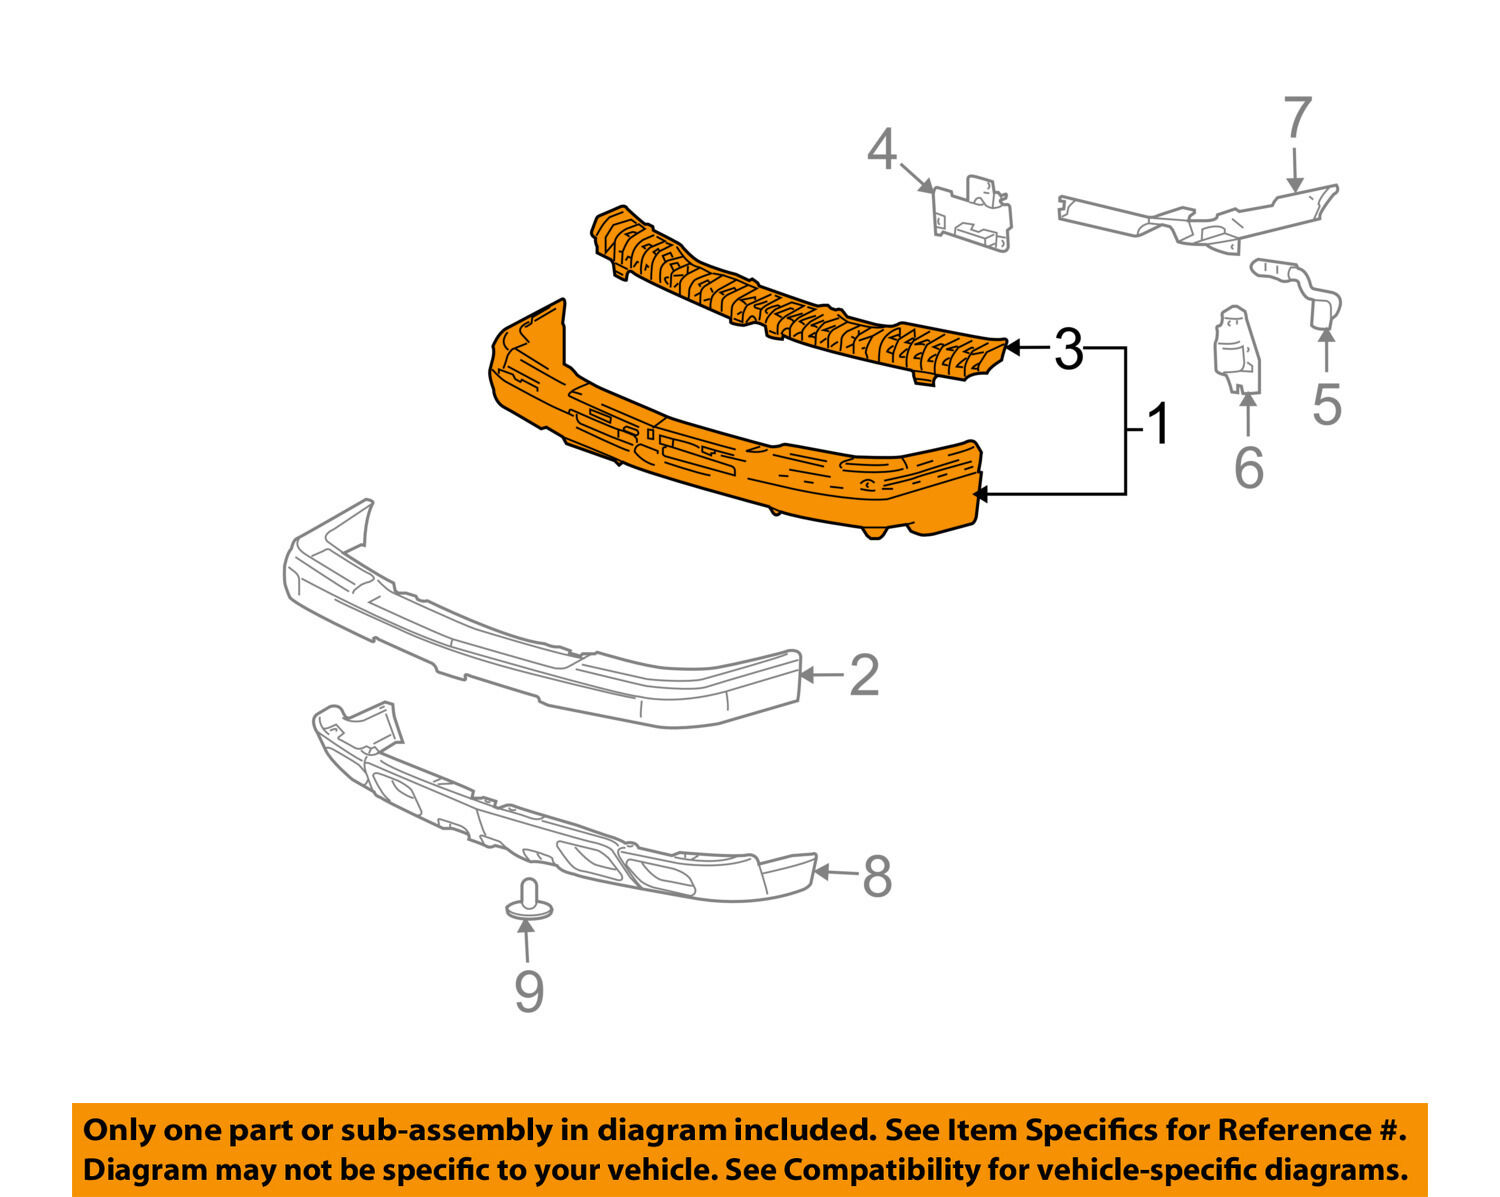 Chevrolet Gm Oem 02 06 Avalanche 1500 Front Bumper Assembly 15095920 Engine Diagram 1 Of 2only Available